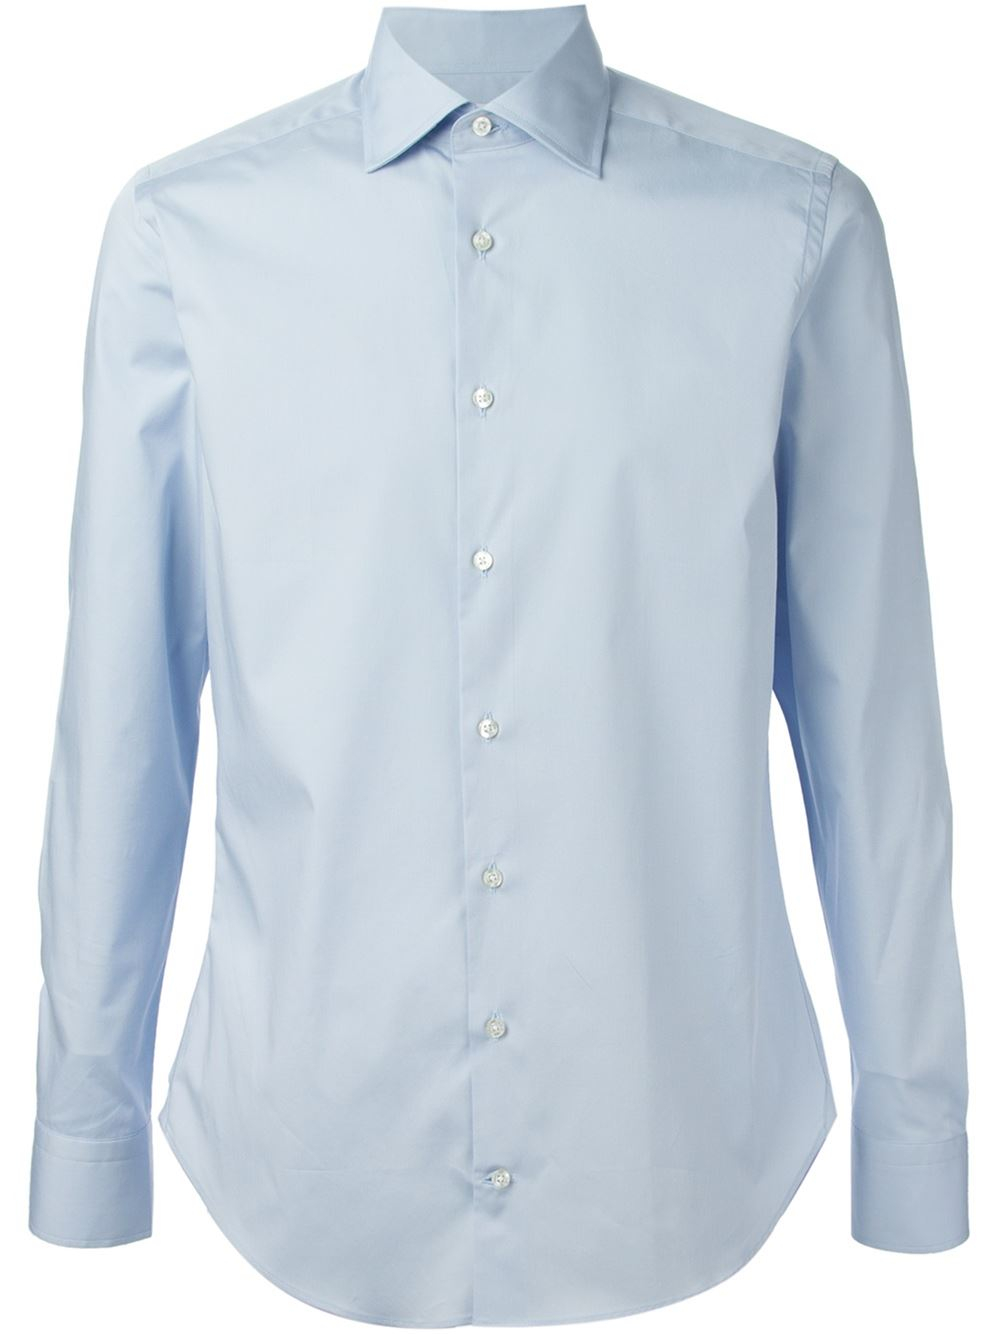 Mens Dress Shirts Spread Collar